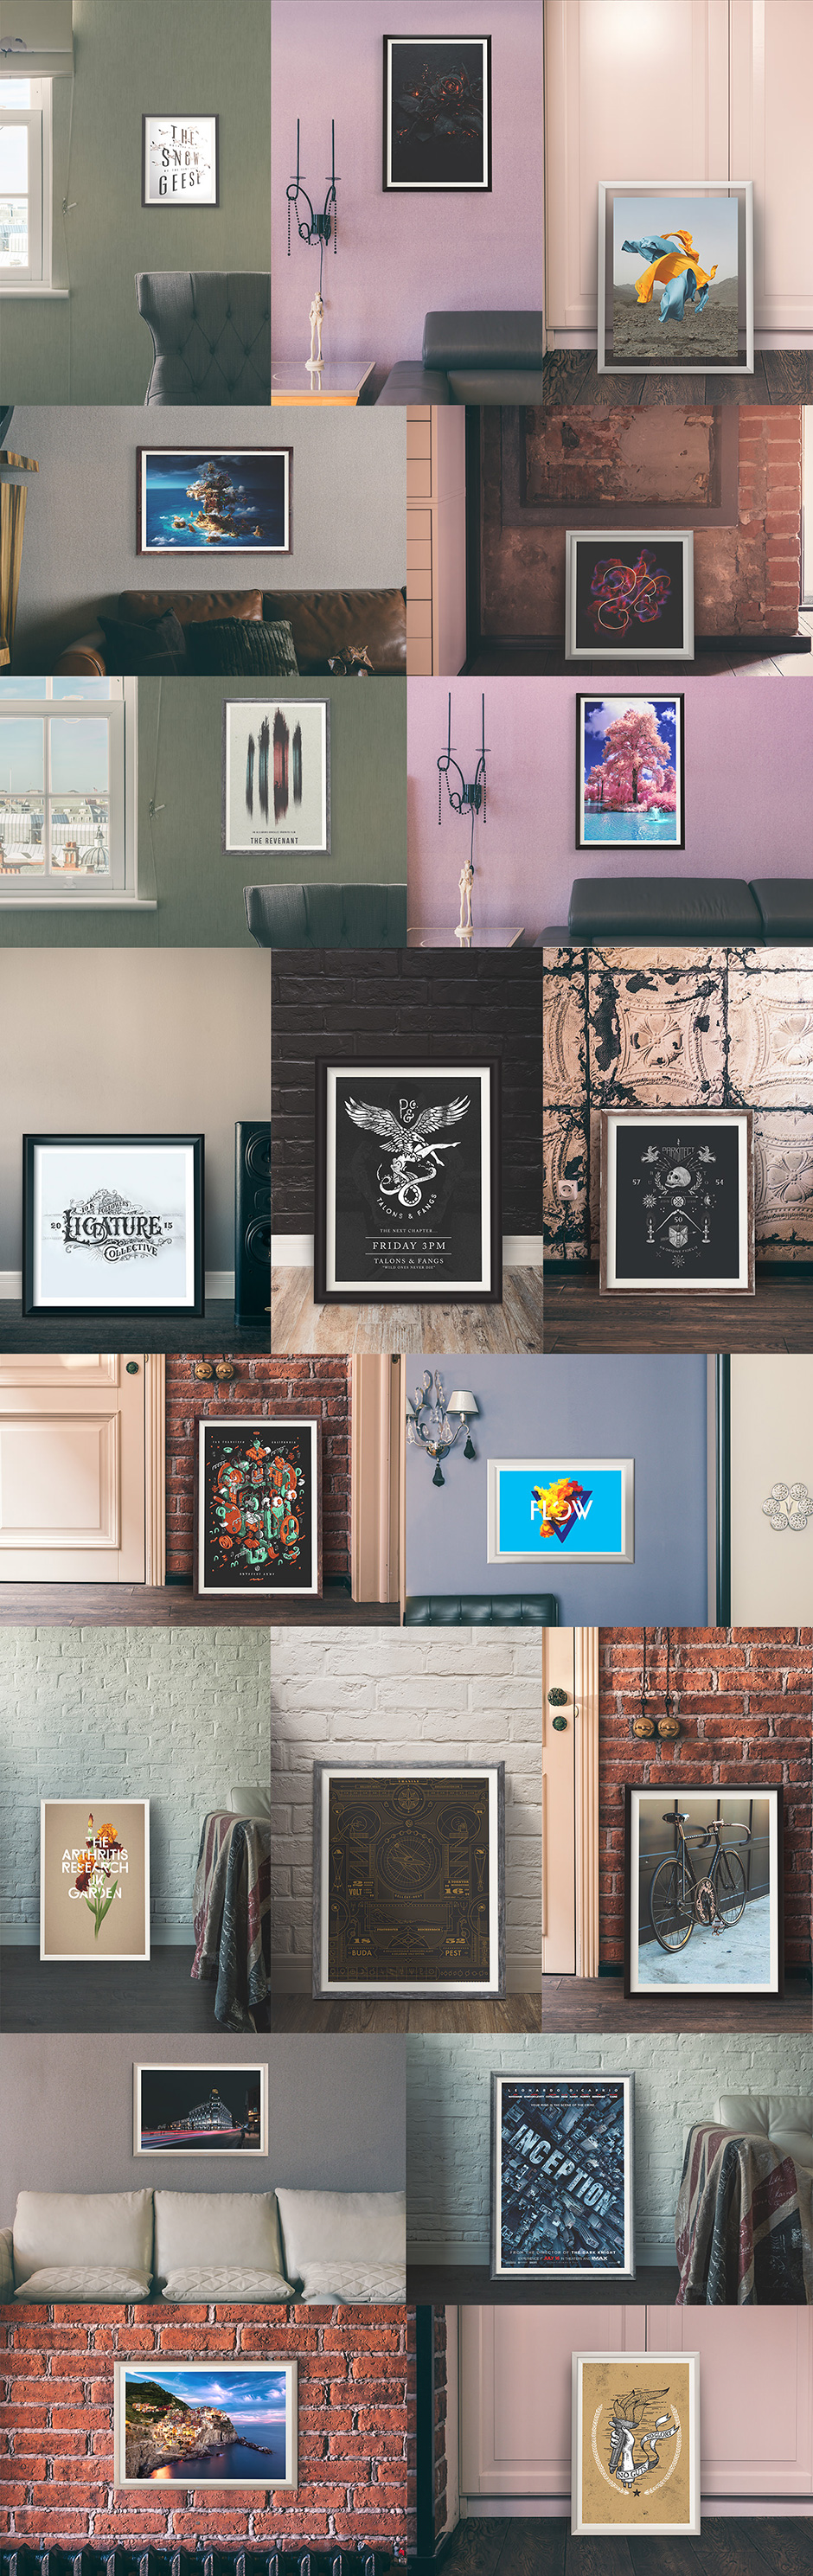 Showroom Frames and Mockups